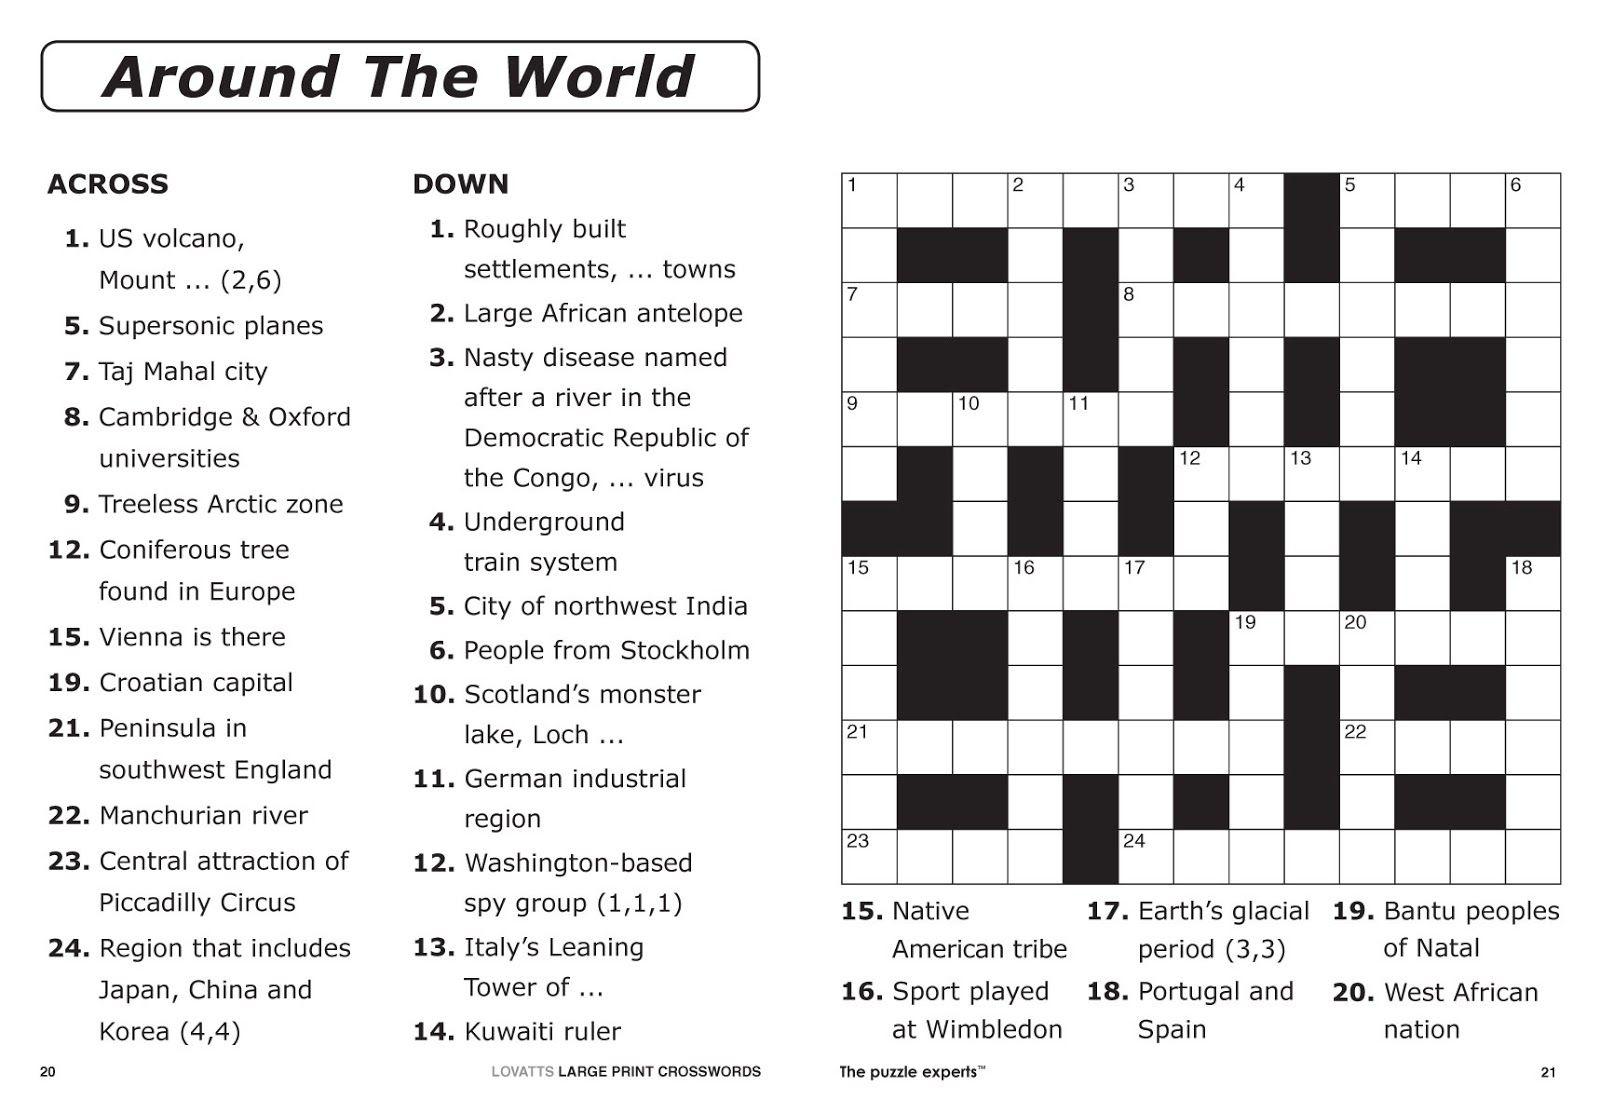 Free Printable Large Print Crossword Puzzles | M3U8 - Easy Printable Crossword Puzzles For Adults